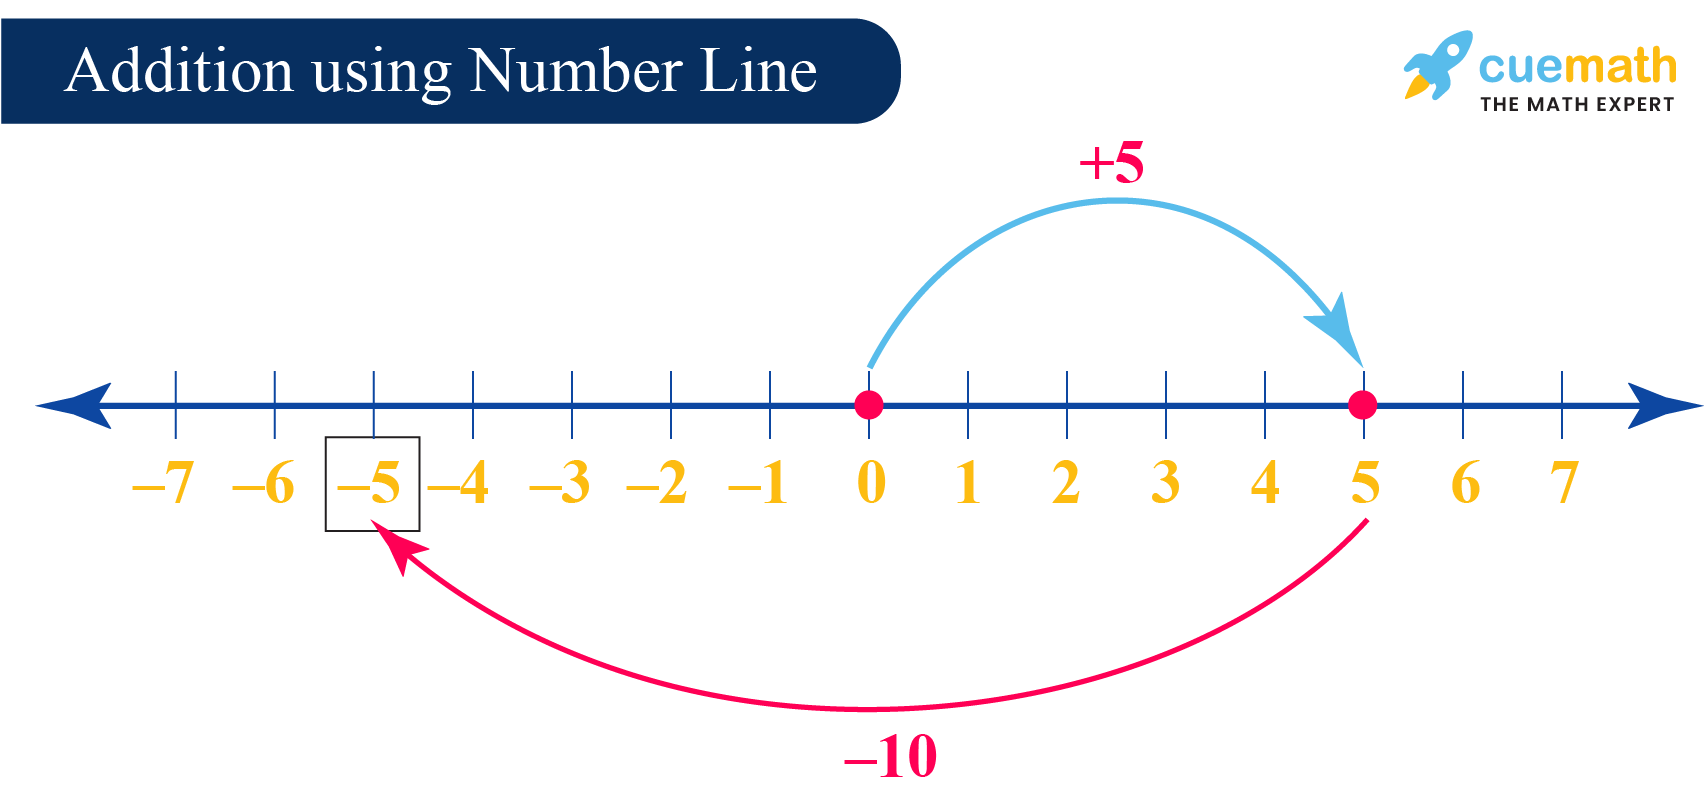 Addition of Integers: Adding integers using the number line